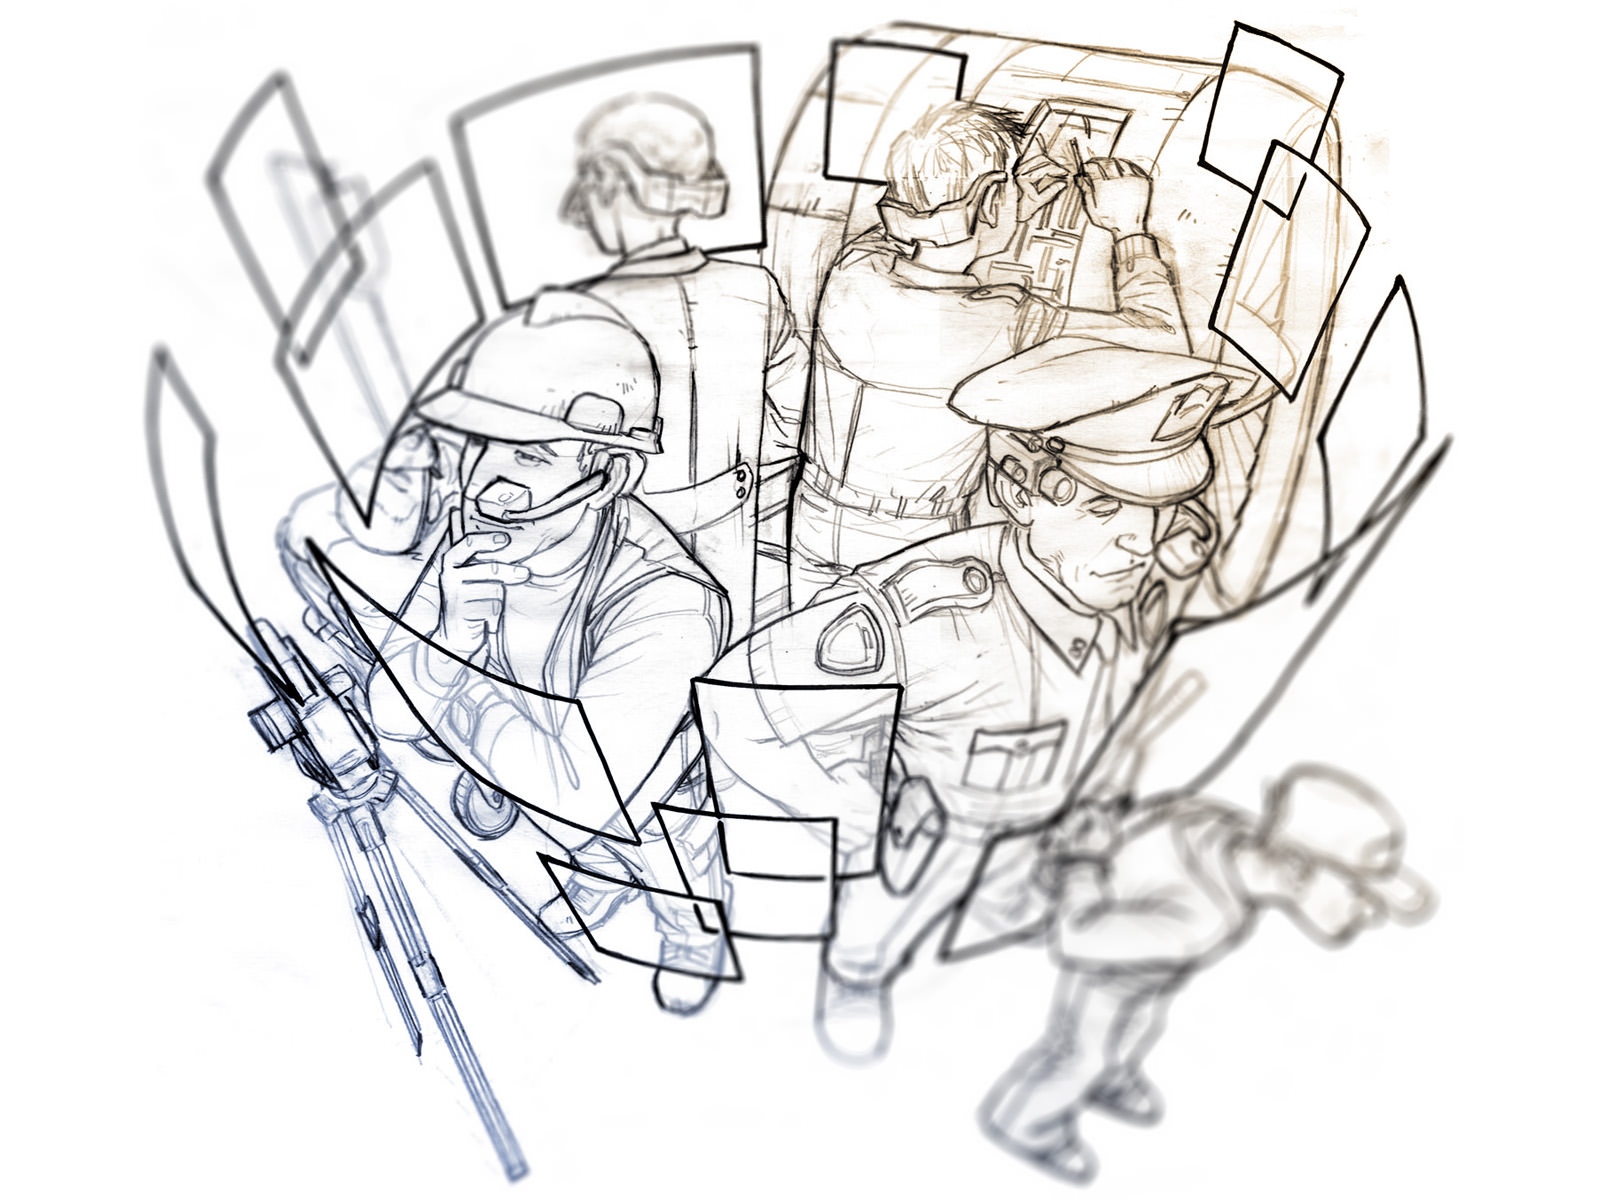 Pre-colourised sketch of 4 workers standing back-to-back wearing the HMD and virtual screens floating in front of them.